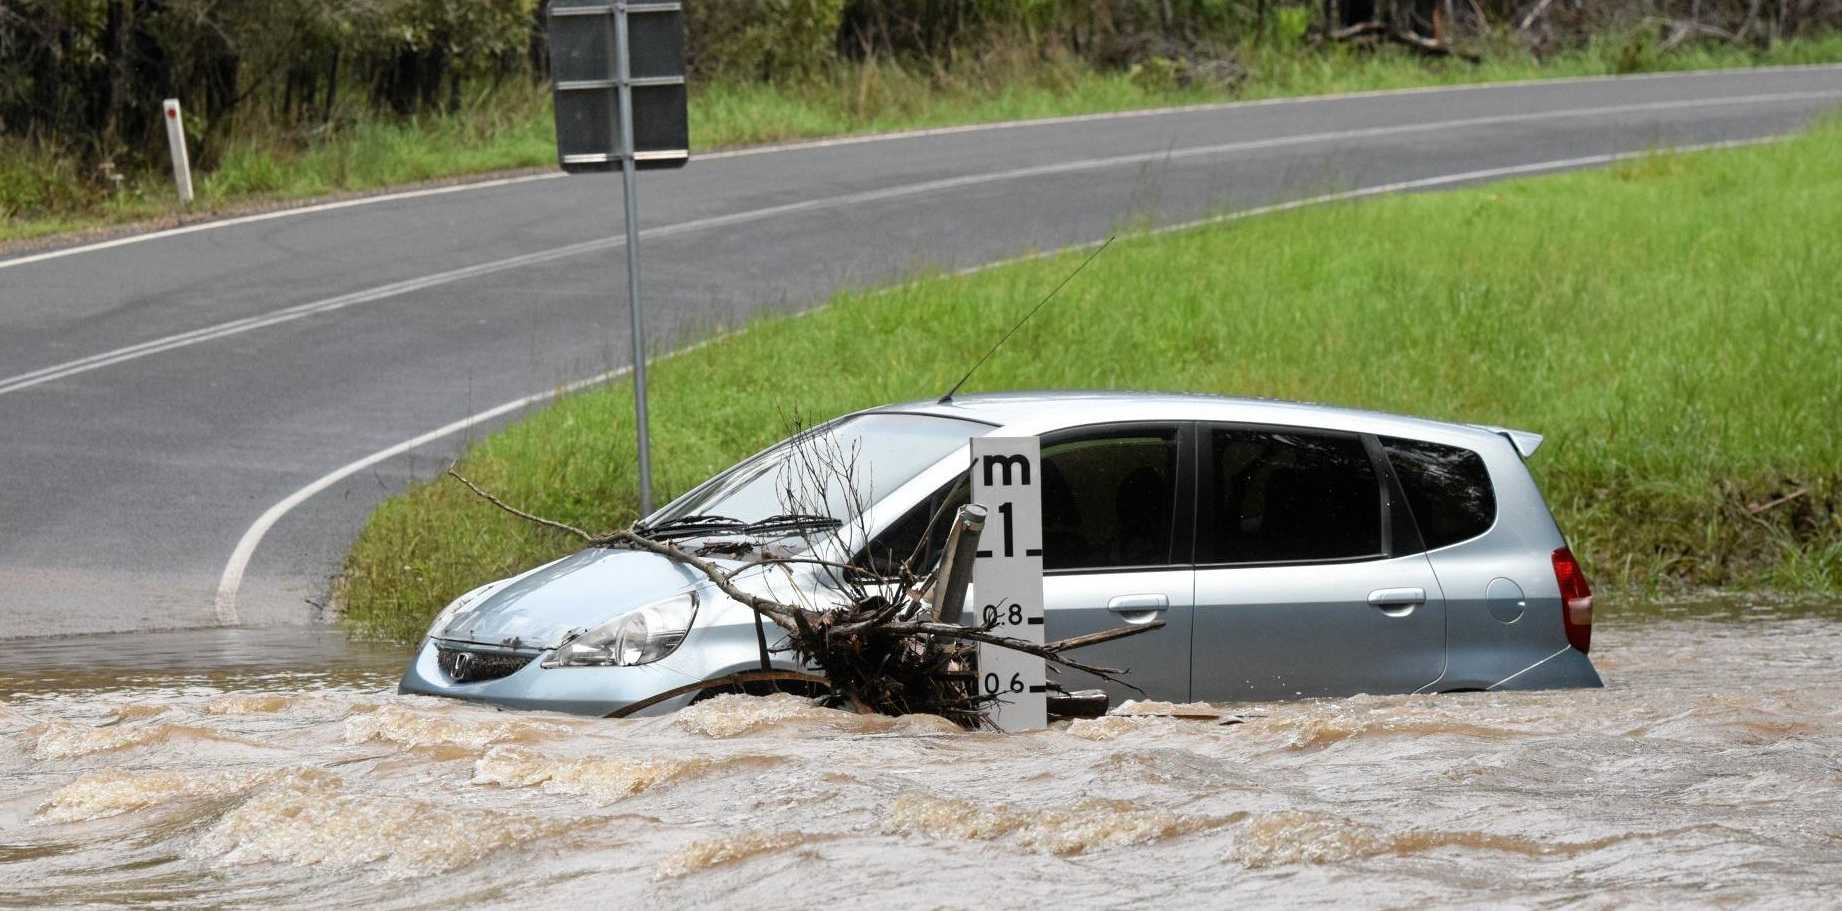 FORGET IT: Police are warning drivers not to risk driving across flooded roads after a man had to flee his vehicle on a crossing on Booyan Rd, Moore Park, on Wednesday, March 29, 2017.